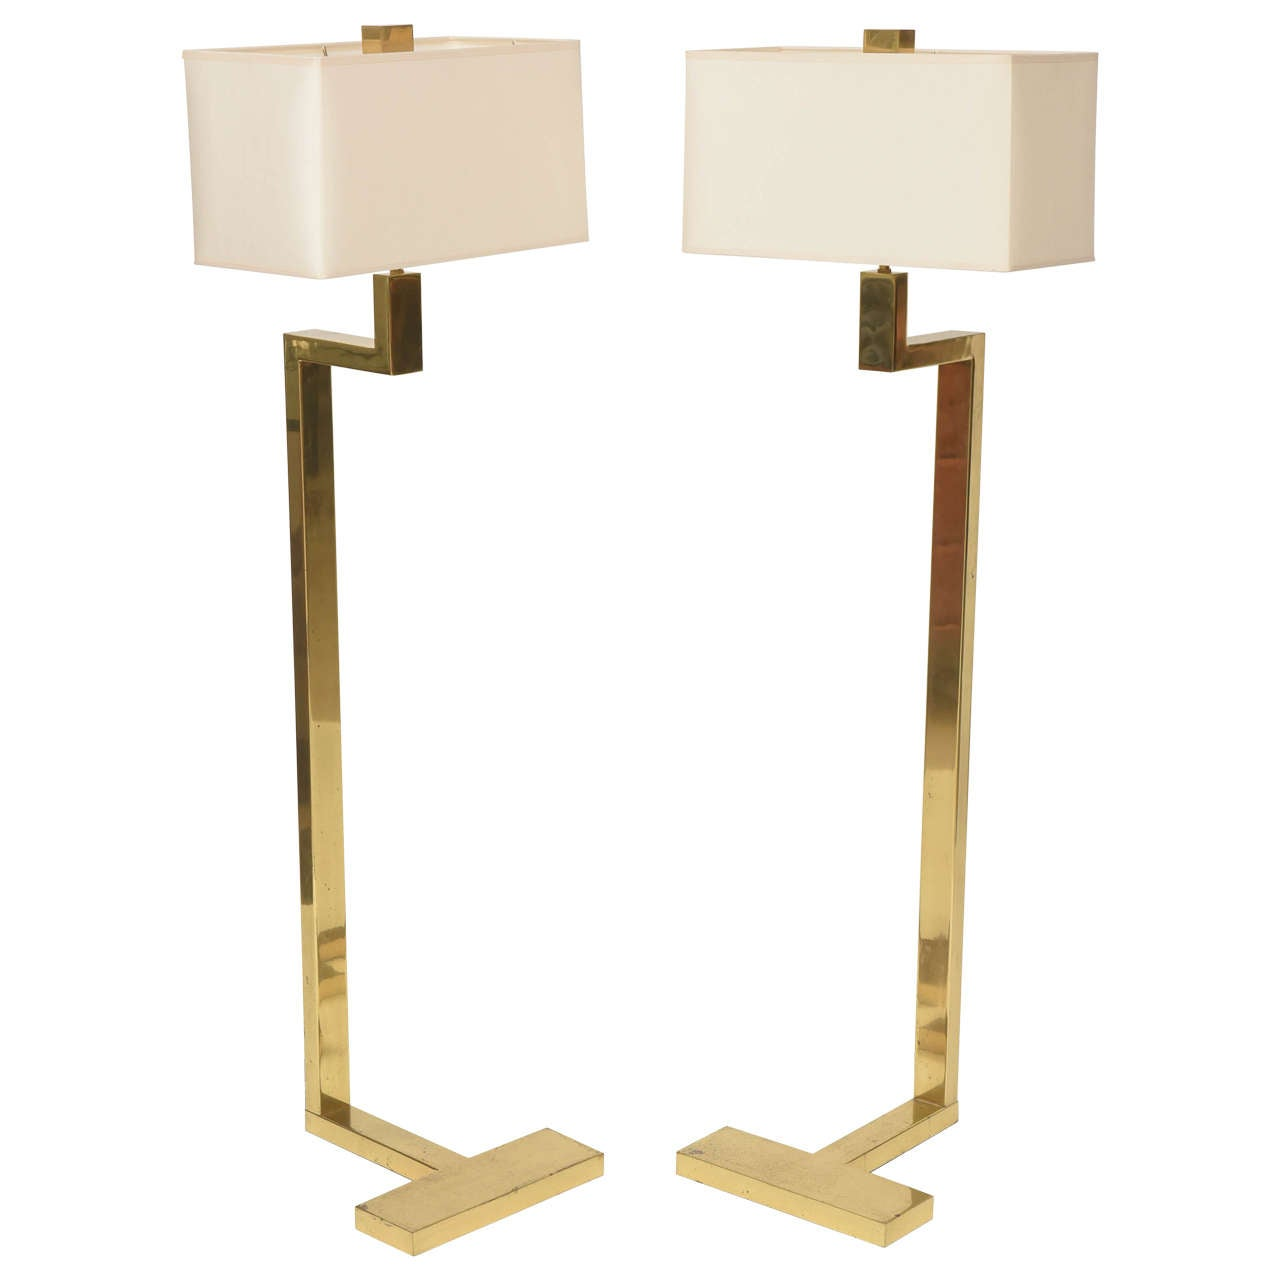 Pair of French Modern Brass Floor Lamps, Jacques Quinet